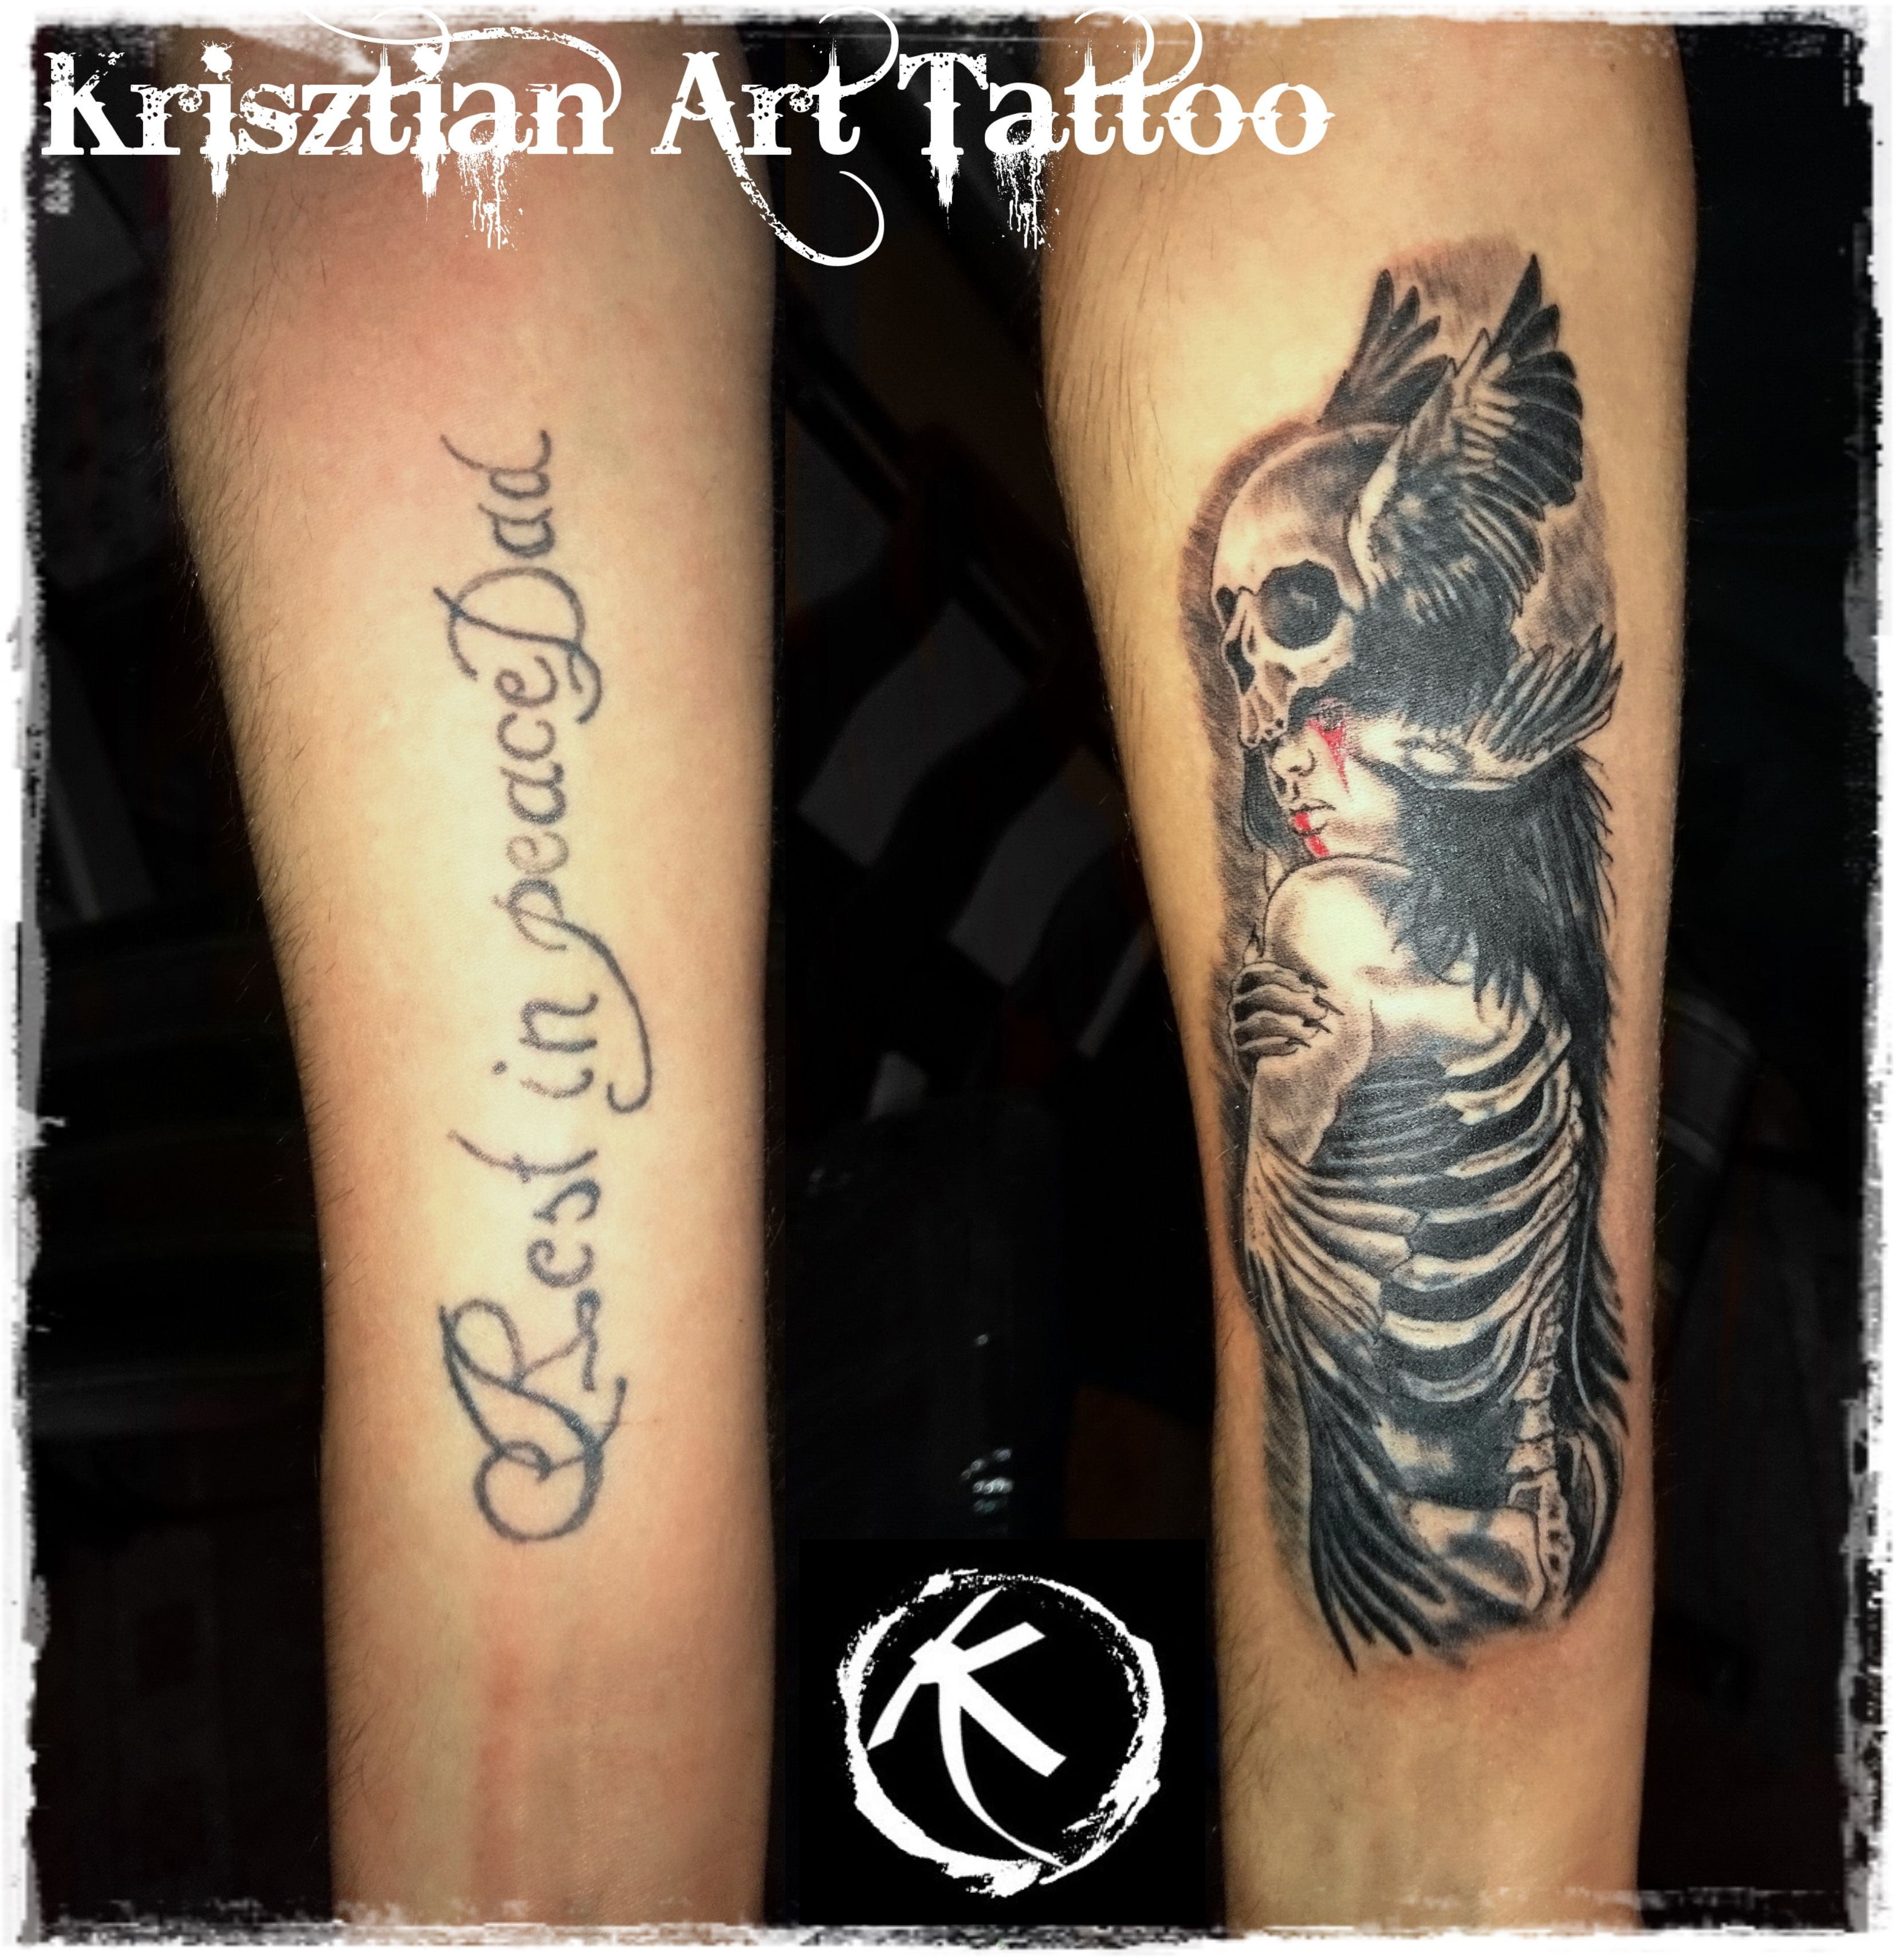 Krisztian Art Tattoo Cover Up Tattoo Forearm Skull And Girl with regard to size 3322 X 3422